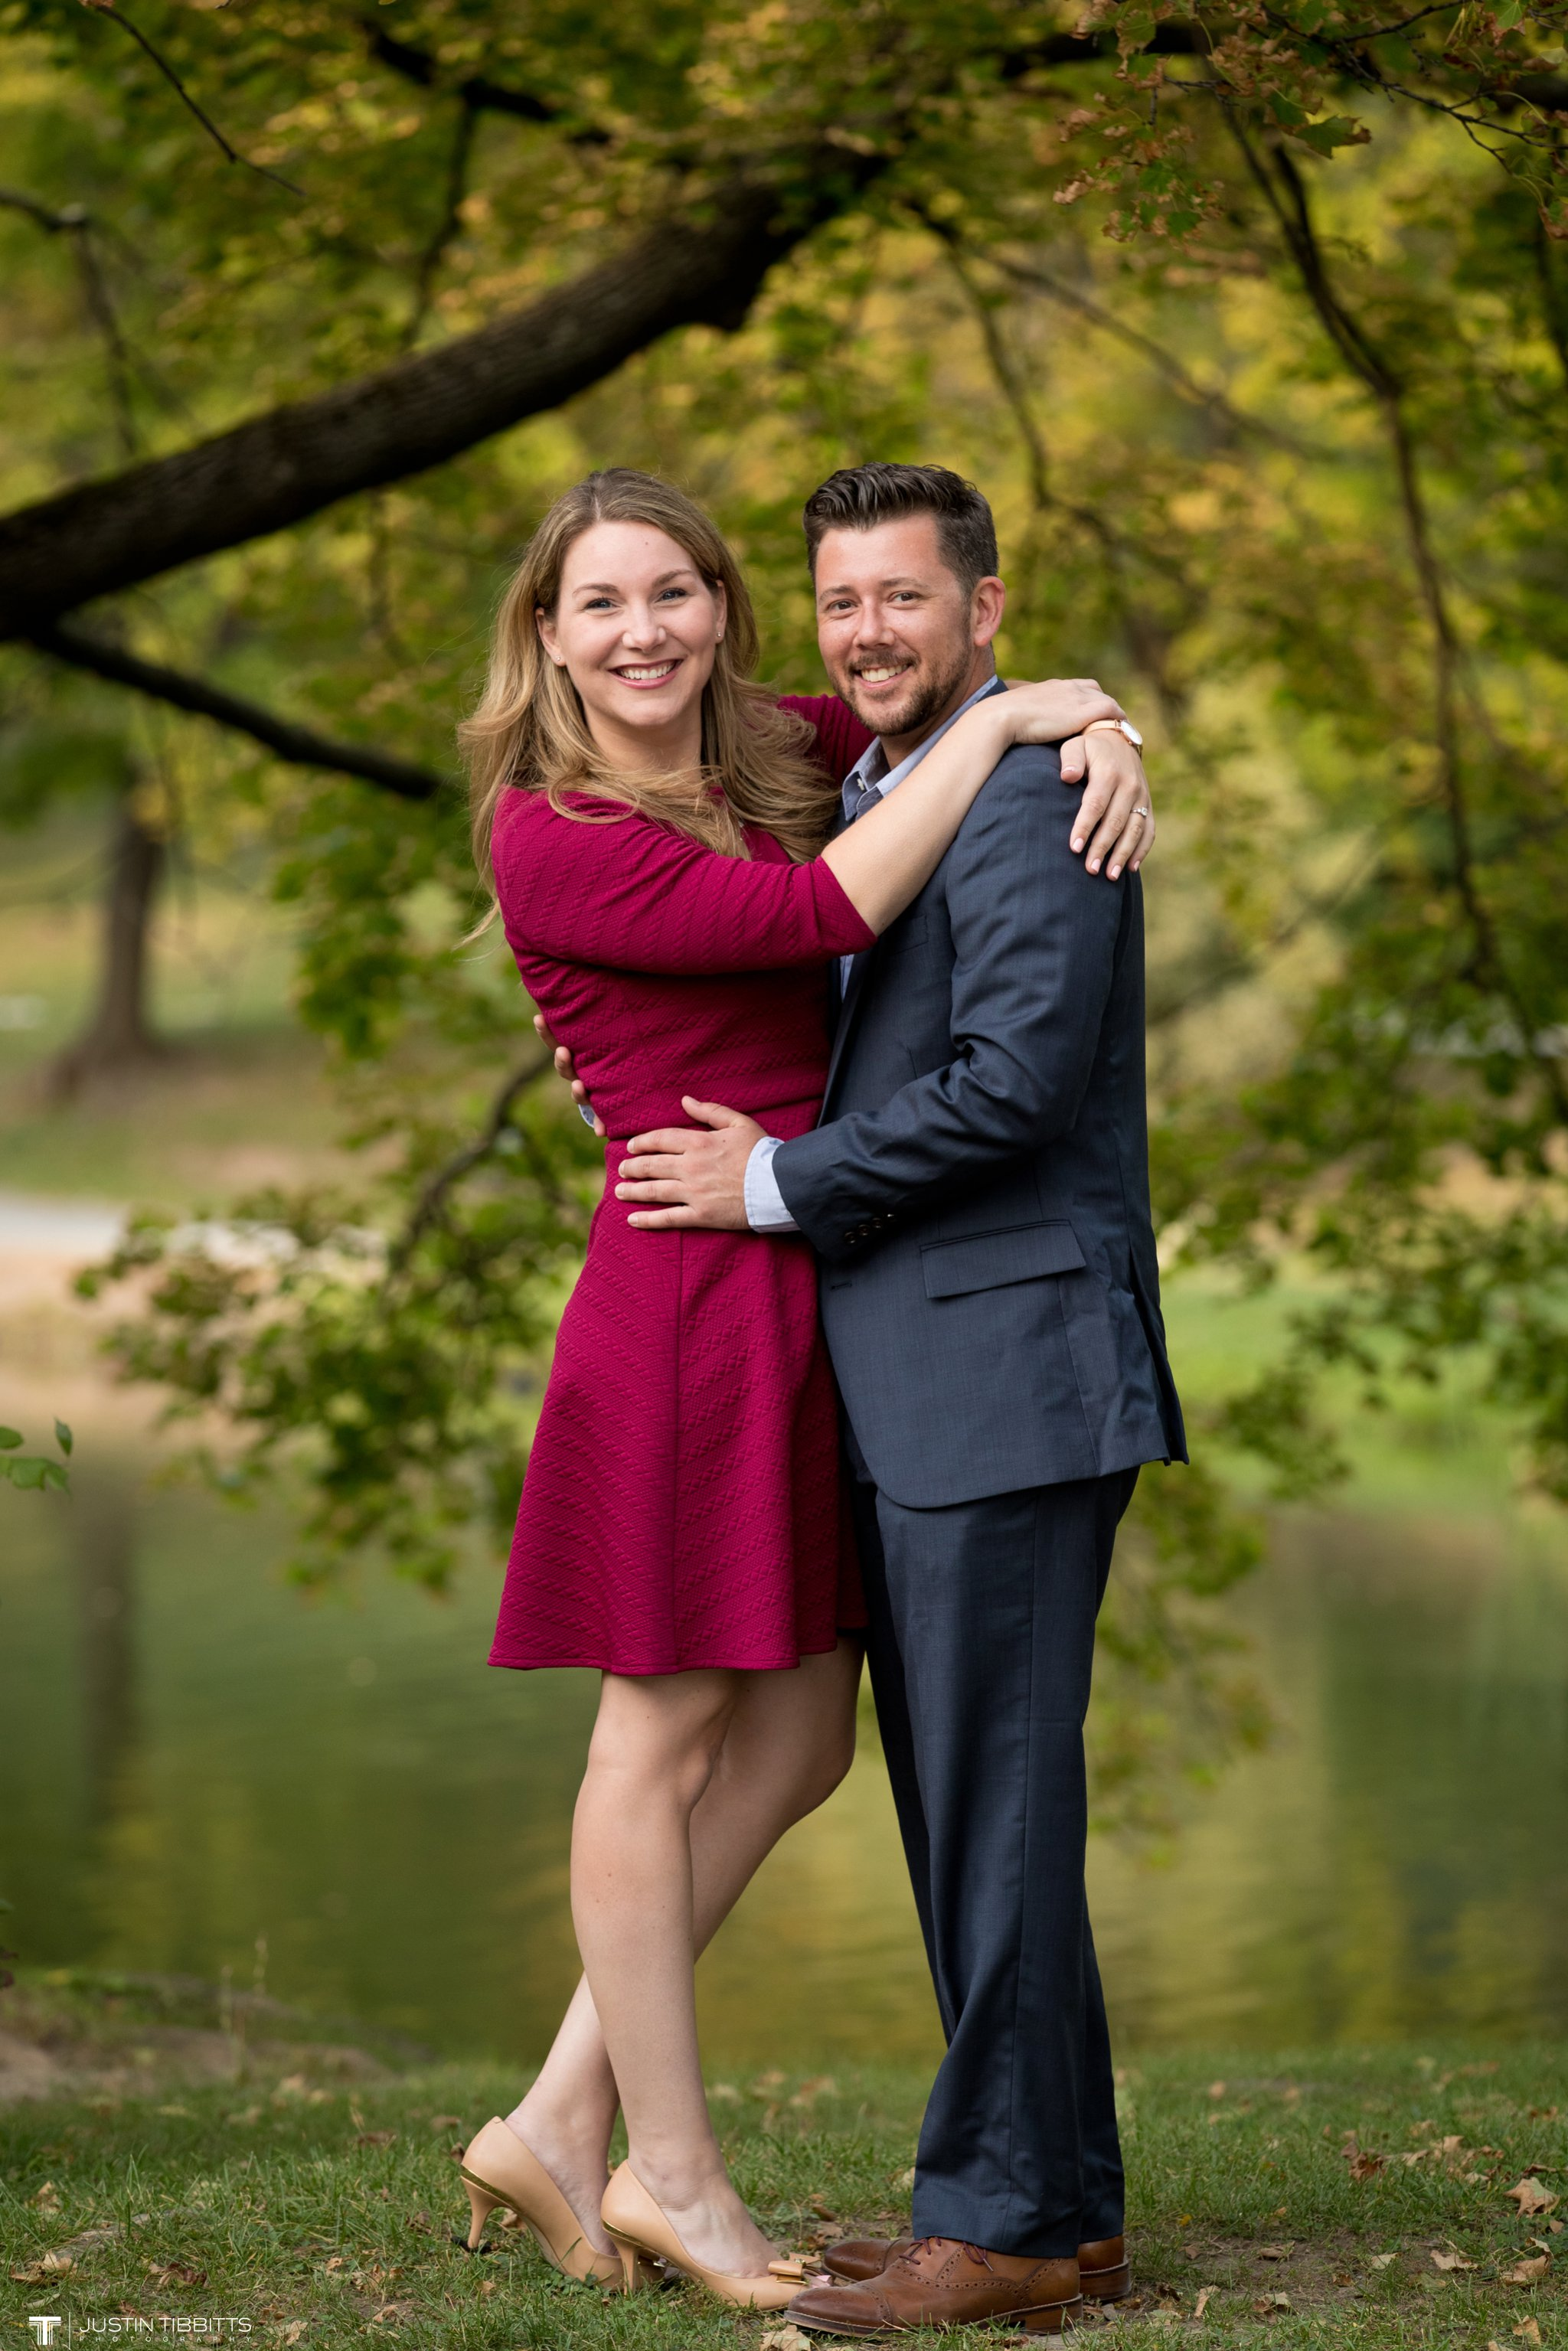 washington-park-albany-ny-engagement-photos-with-andrea-and-dan_0017